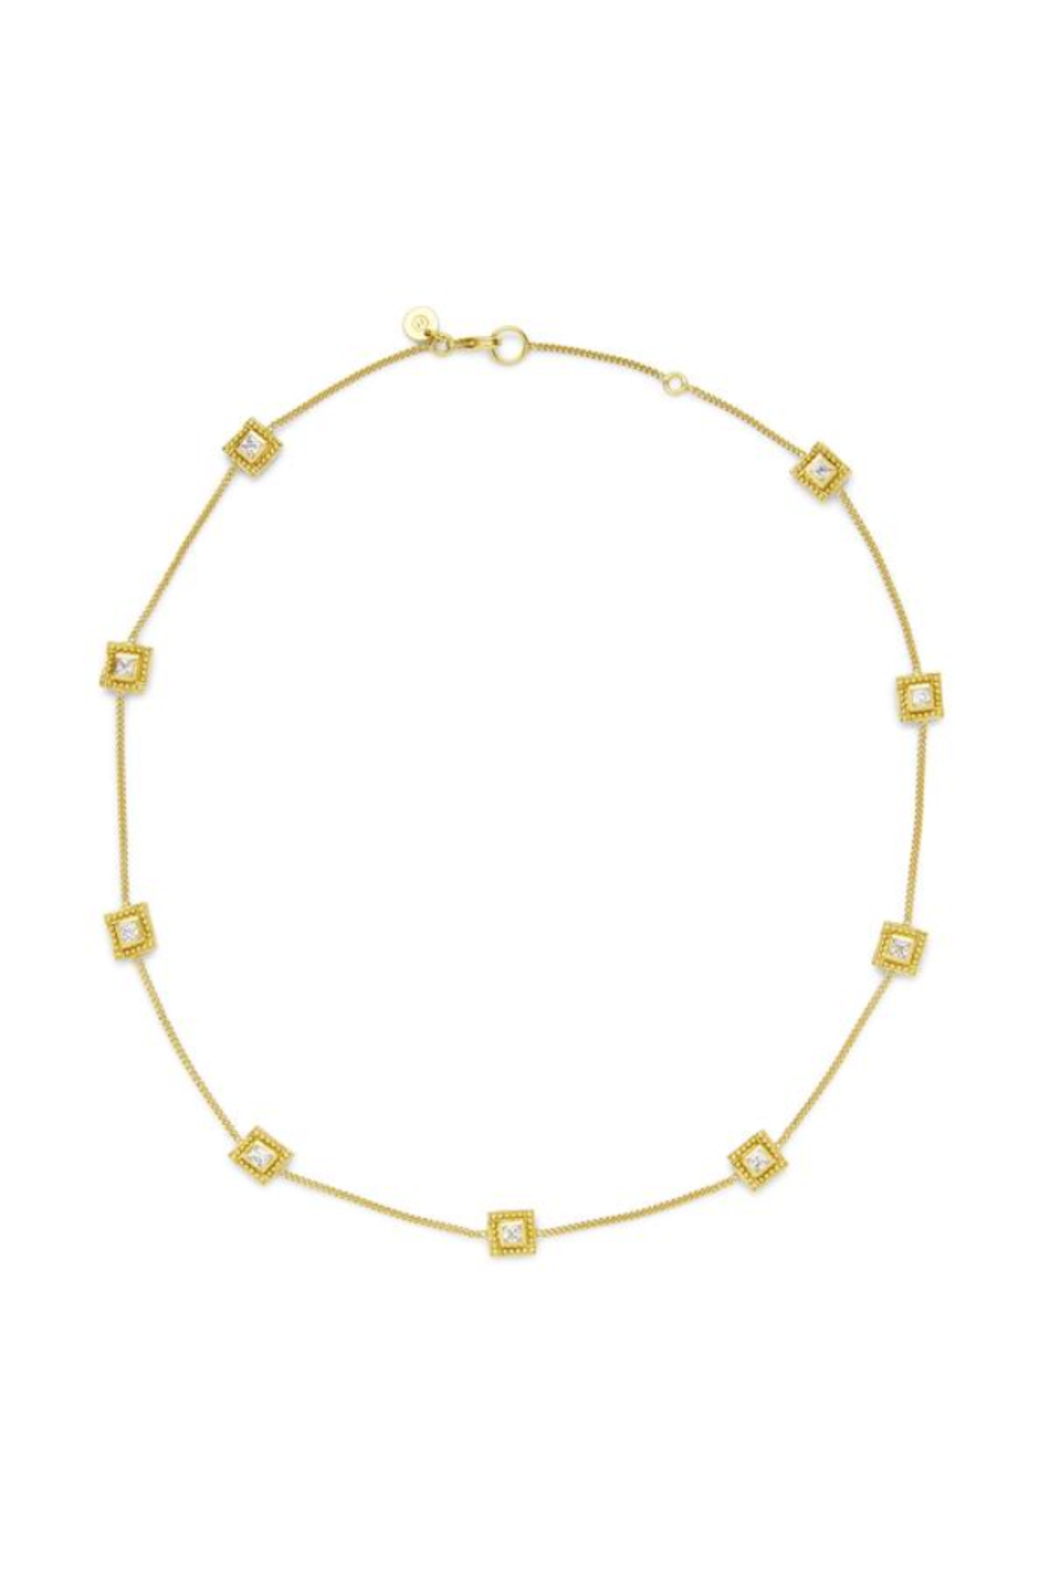 The Birds Nest ISABEL DELICATE STATION NECKLACE-GOLD ZIRCON - Main Image